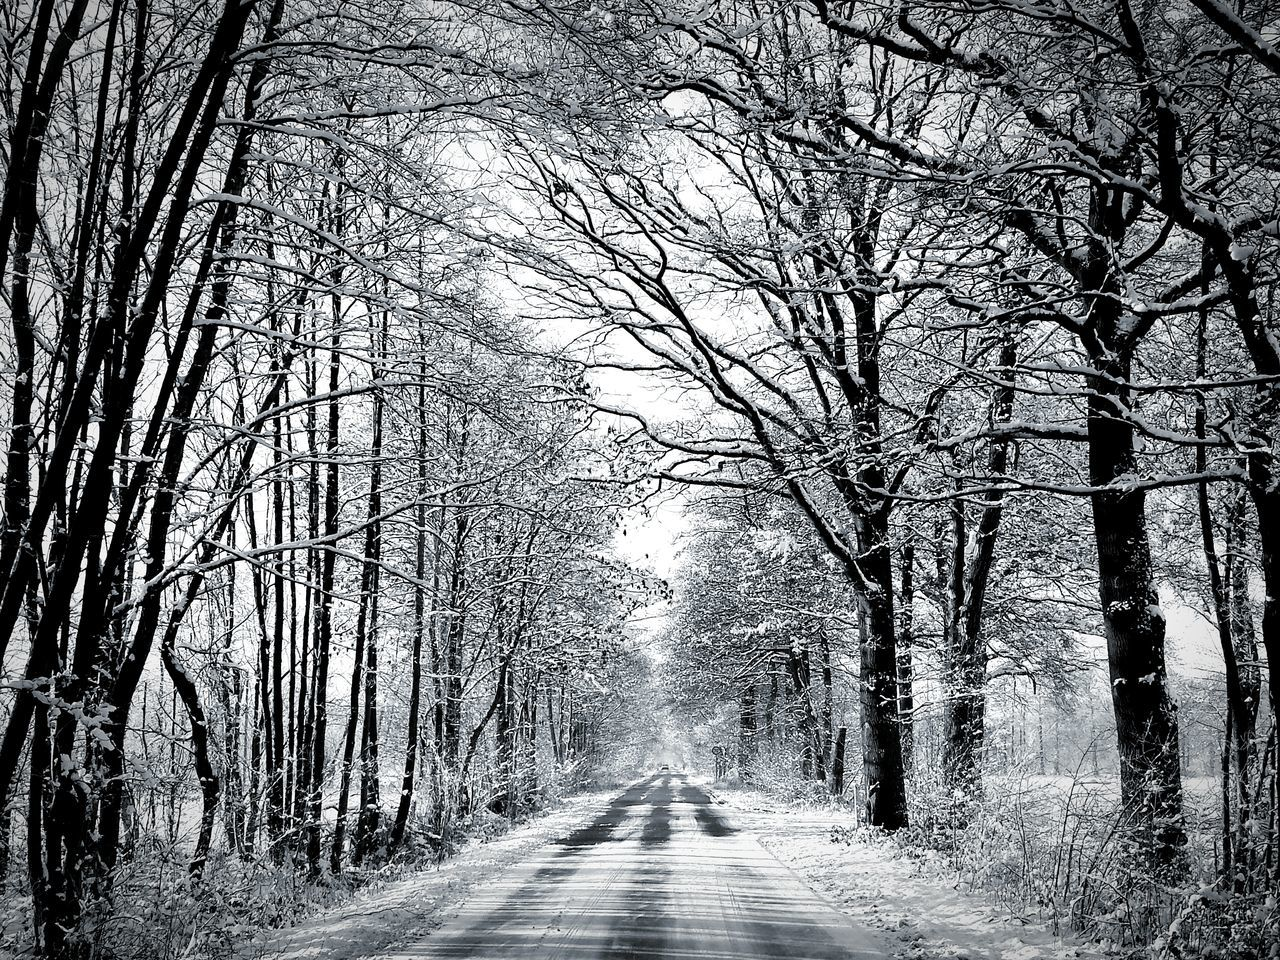 The Way Forward Trees And Bushes The Way Forward Beauty In Nature Tree Transportation Road Diminishing Perspective Tranquil Scene Vanishing Point Bare Tree Tree Trunk Tranquility Non-urban Scene Scenics Nature Branch Day Treelined WoodLand Growth Outdoors Beauty In Nature Black And White Black And White Edit